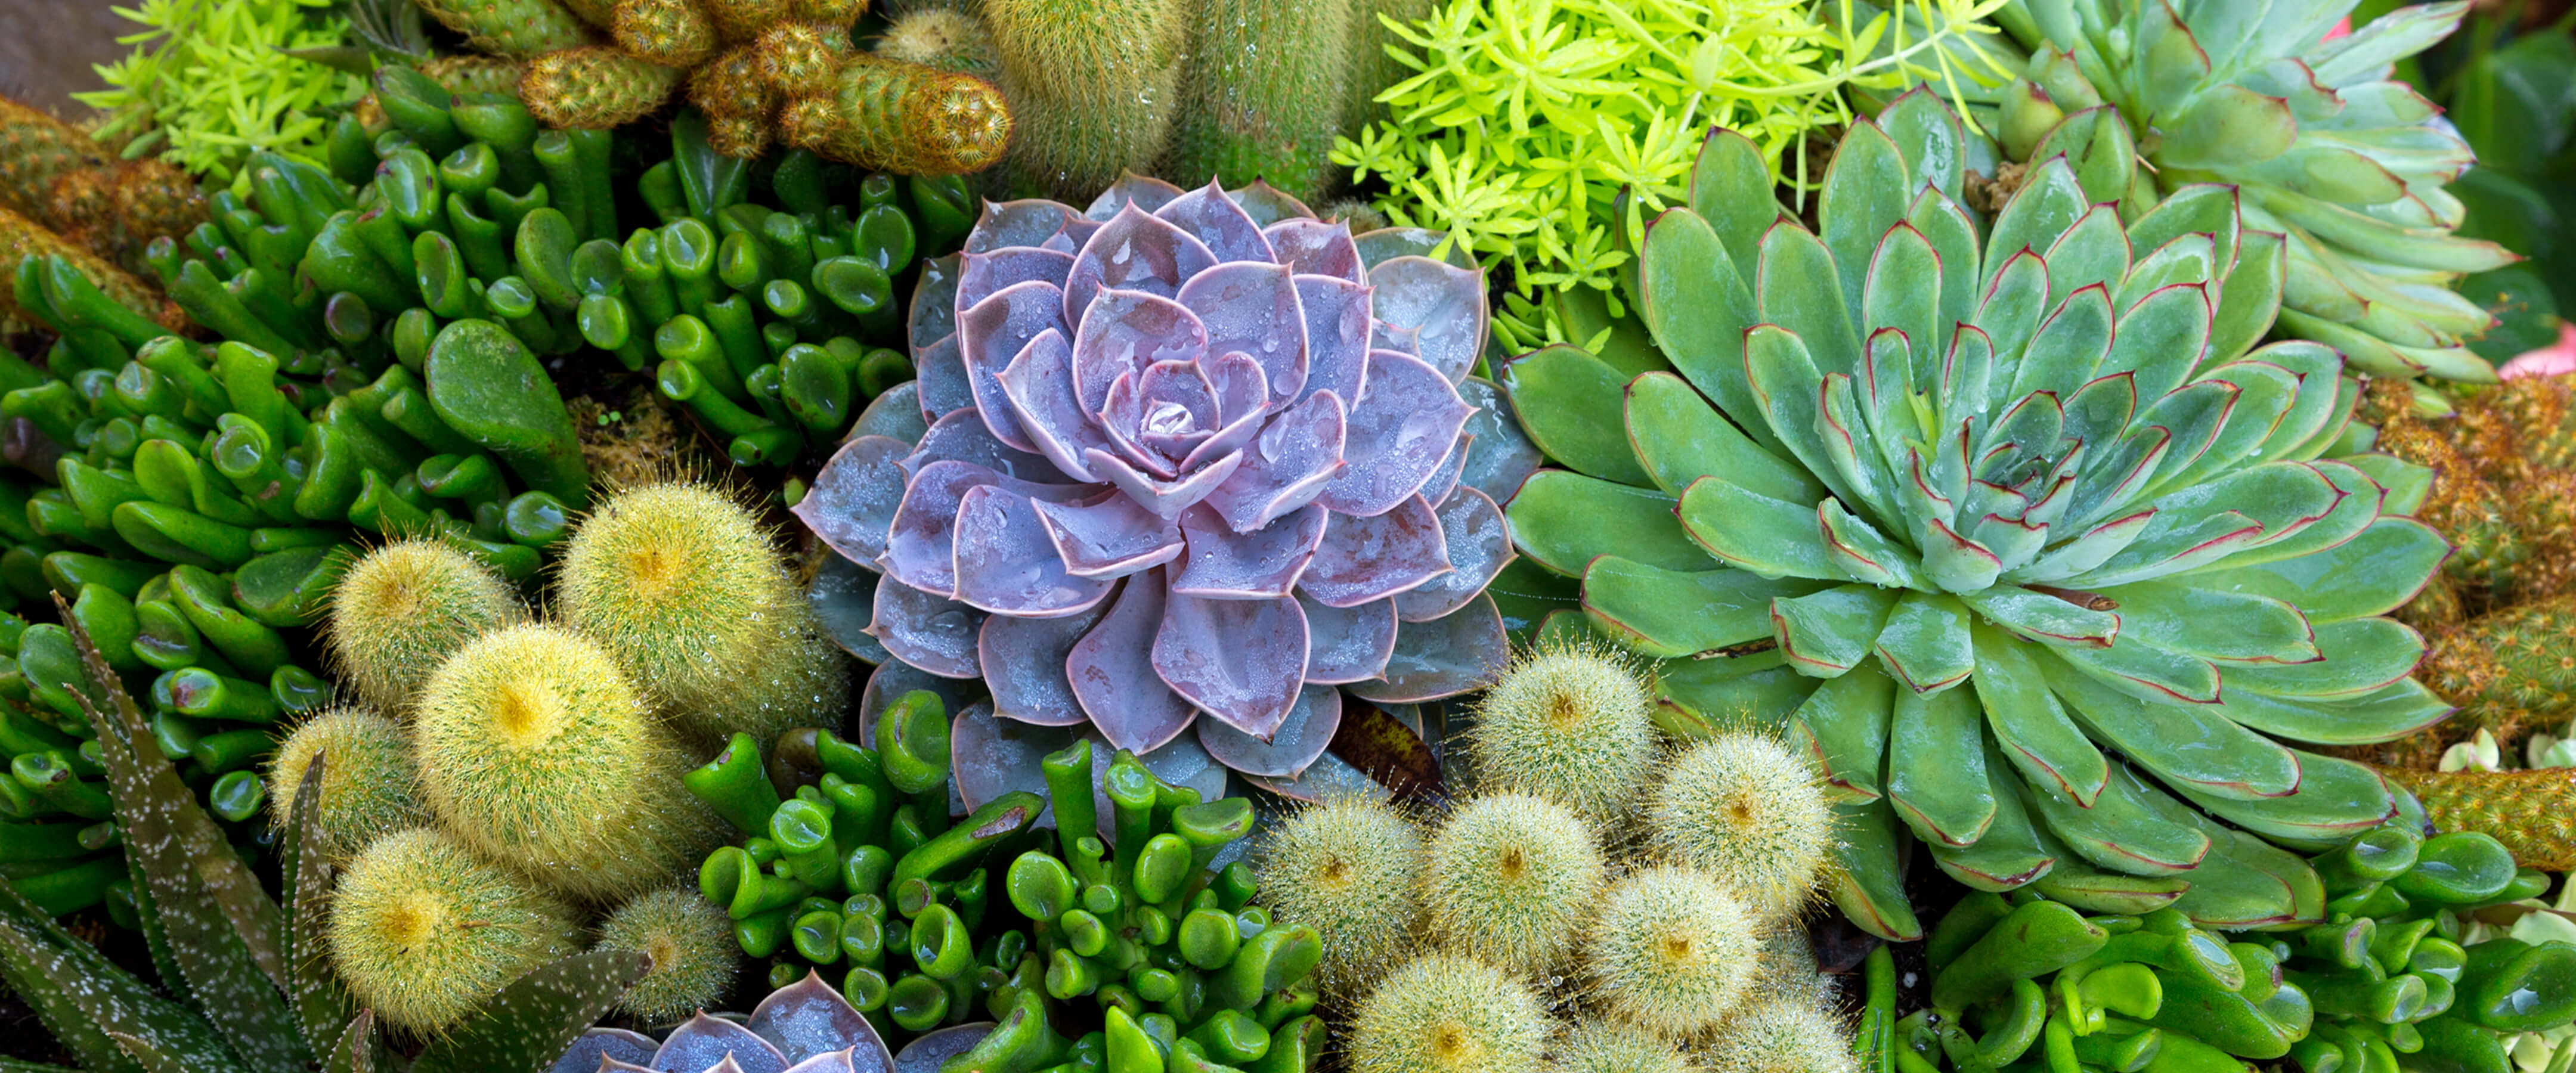 A closeup of a variety of succulent and cactus plants